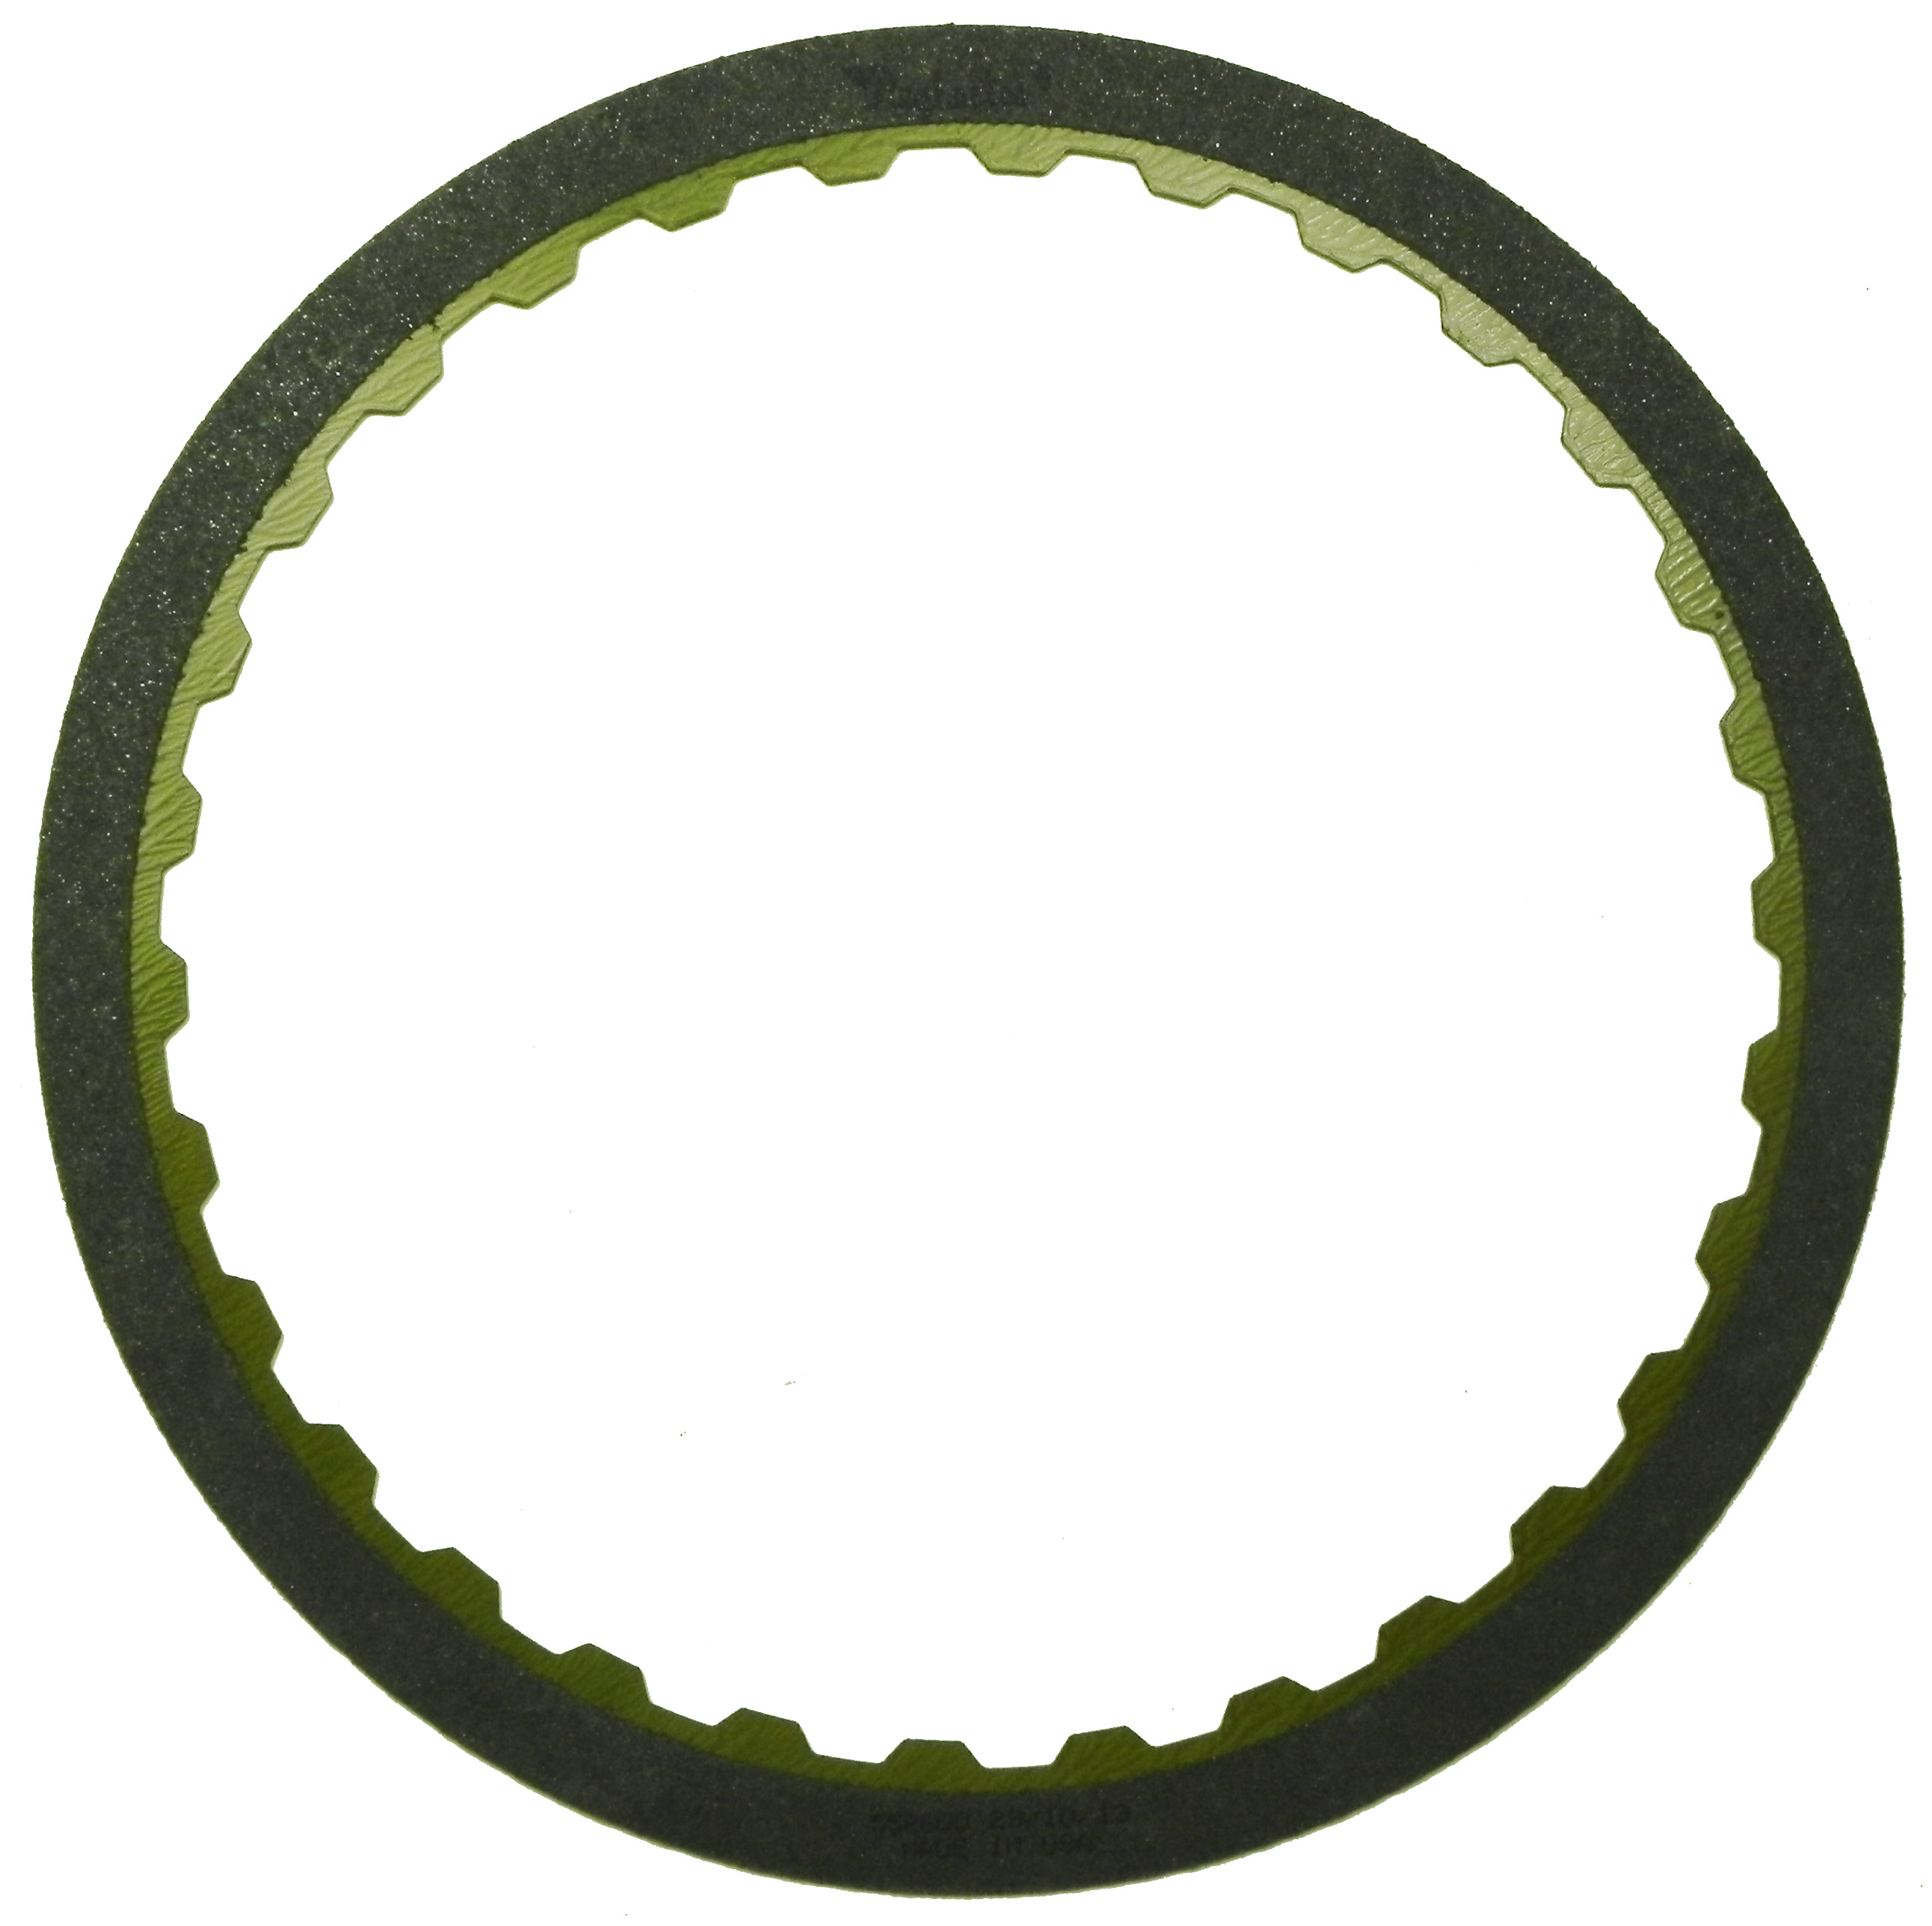 R558600 | 2012-ON Friction Clutch Plate High Energy 2, 6 (Waved) High Energy